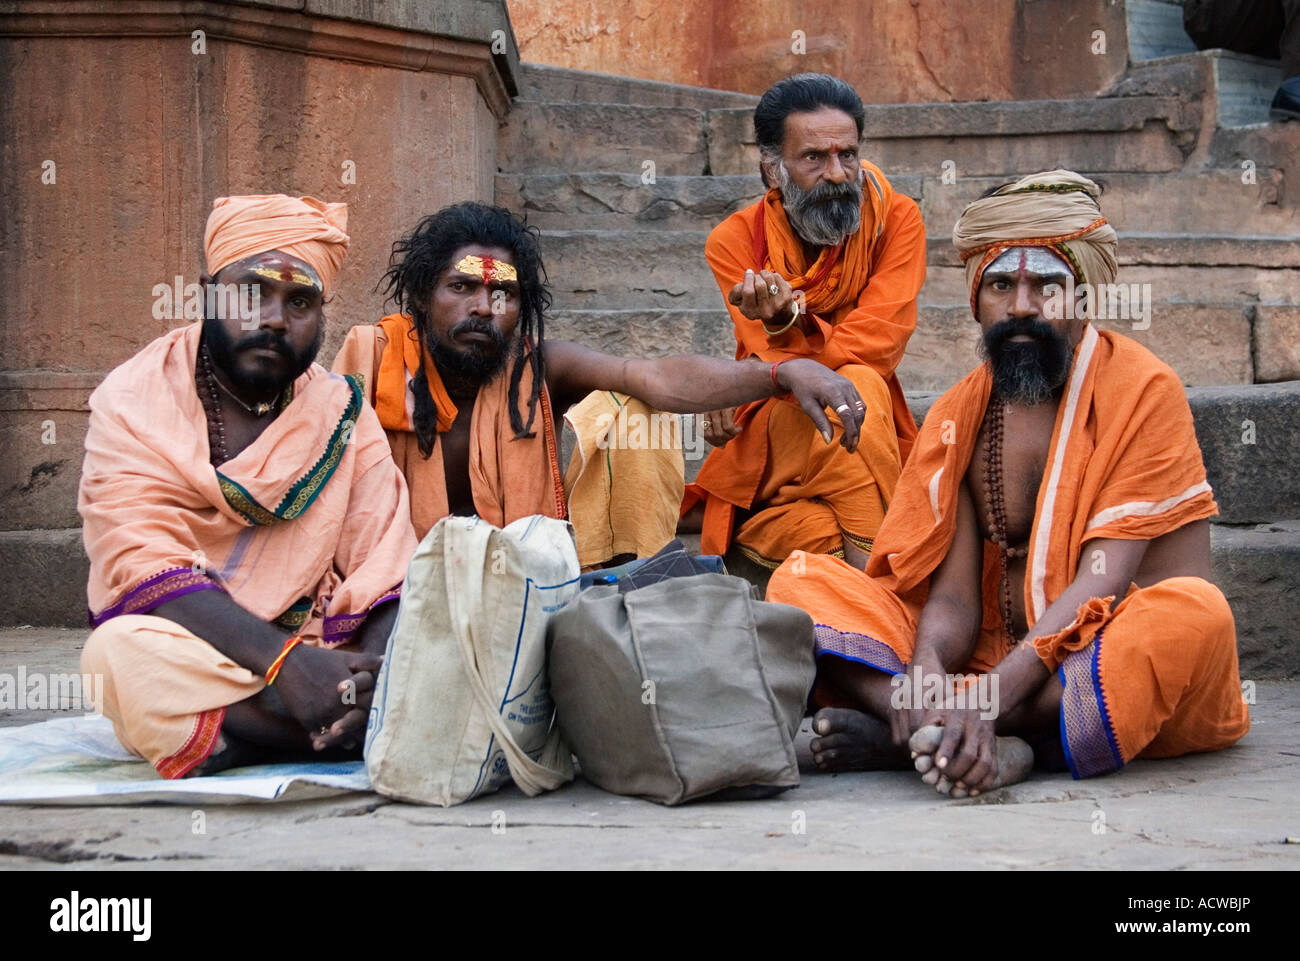 Holy Saddou men at the stairs at the ghats Varanasi Benares India - Stock Image